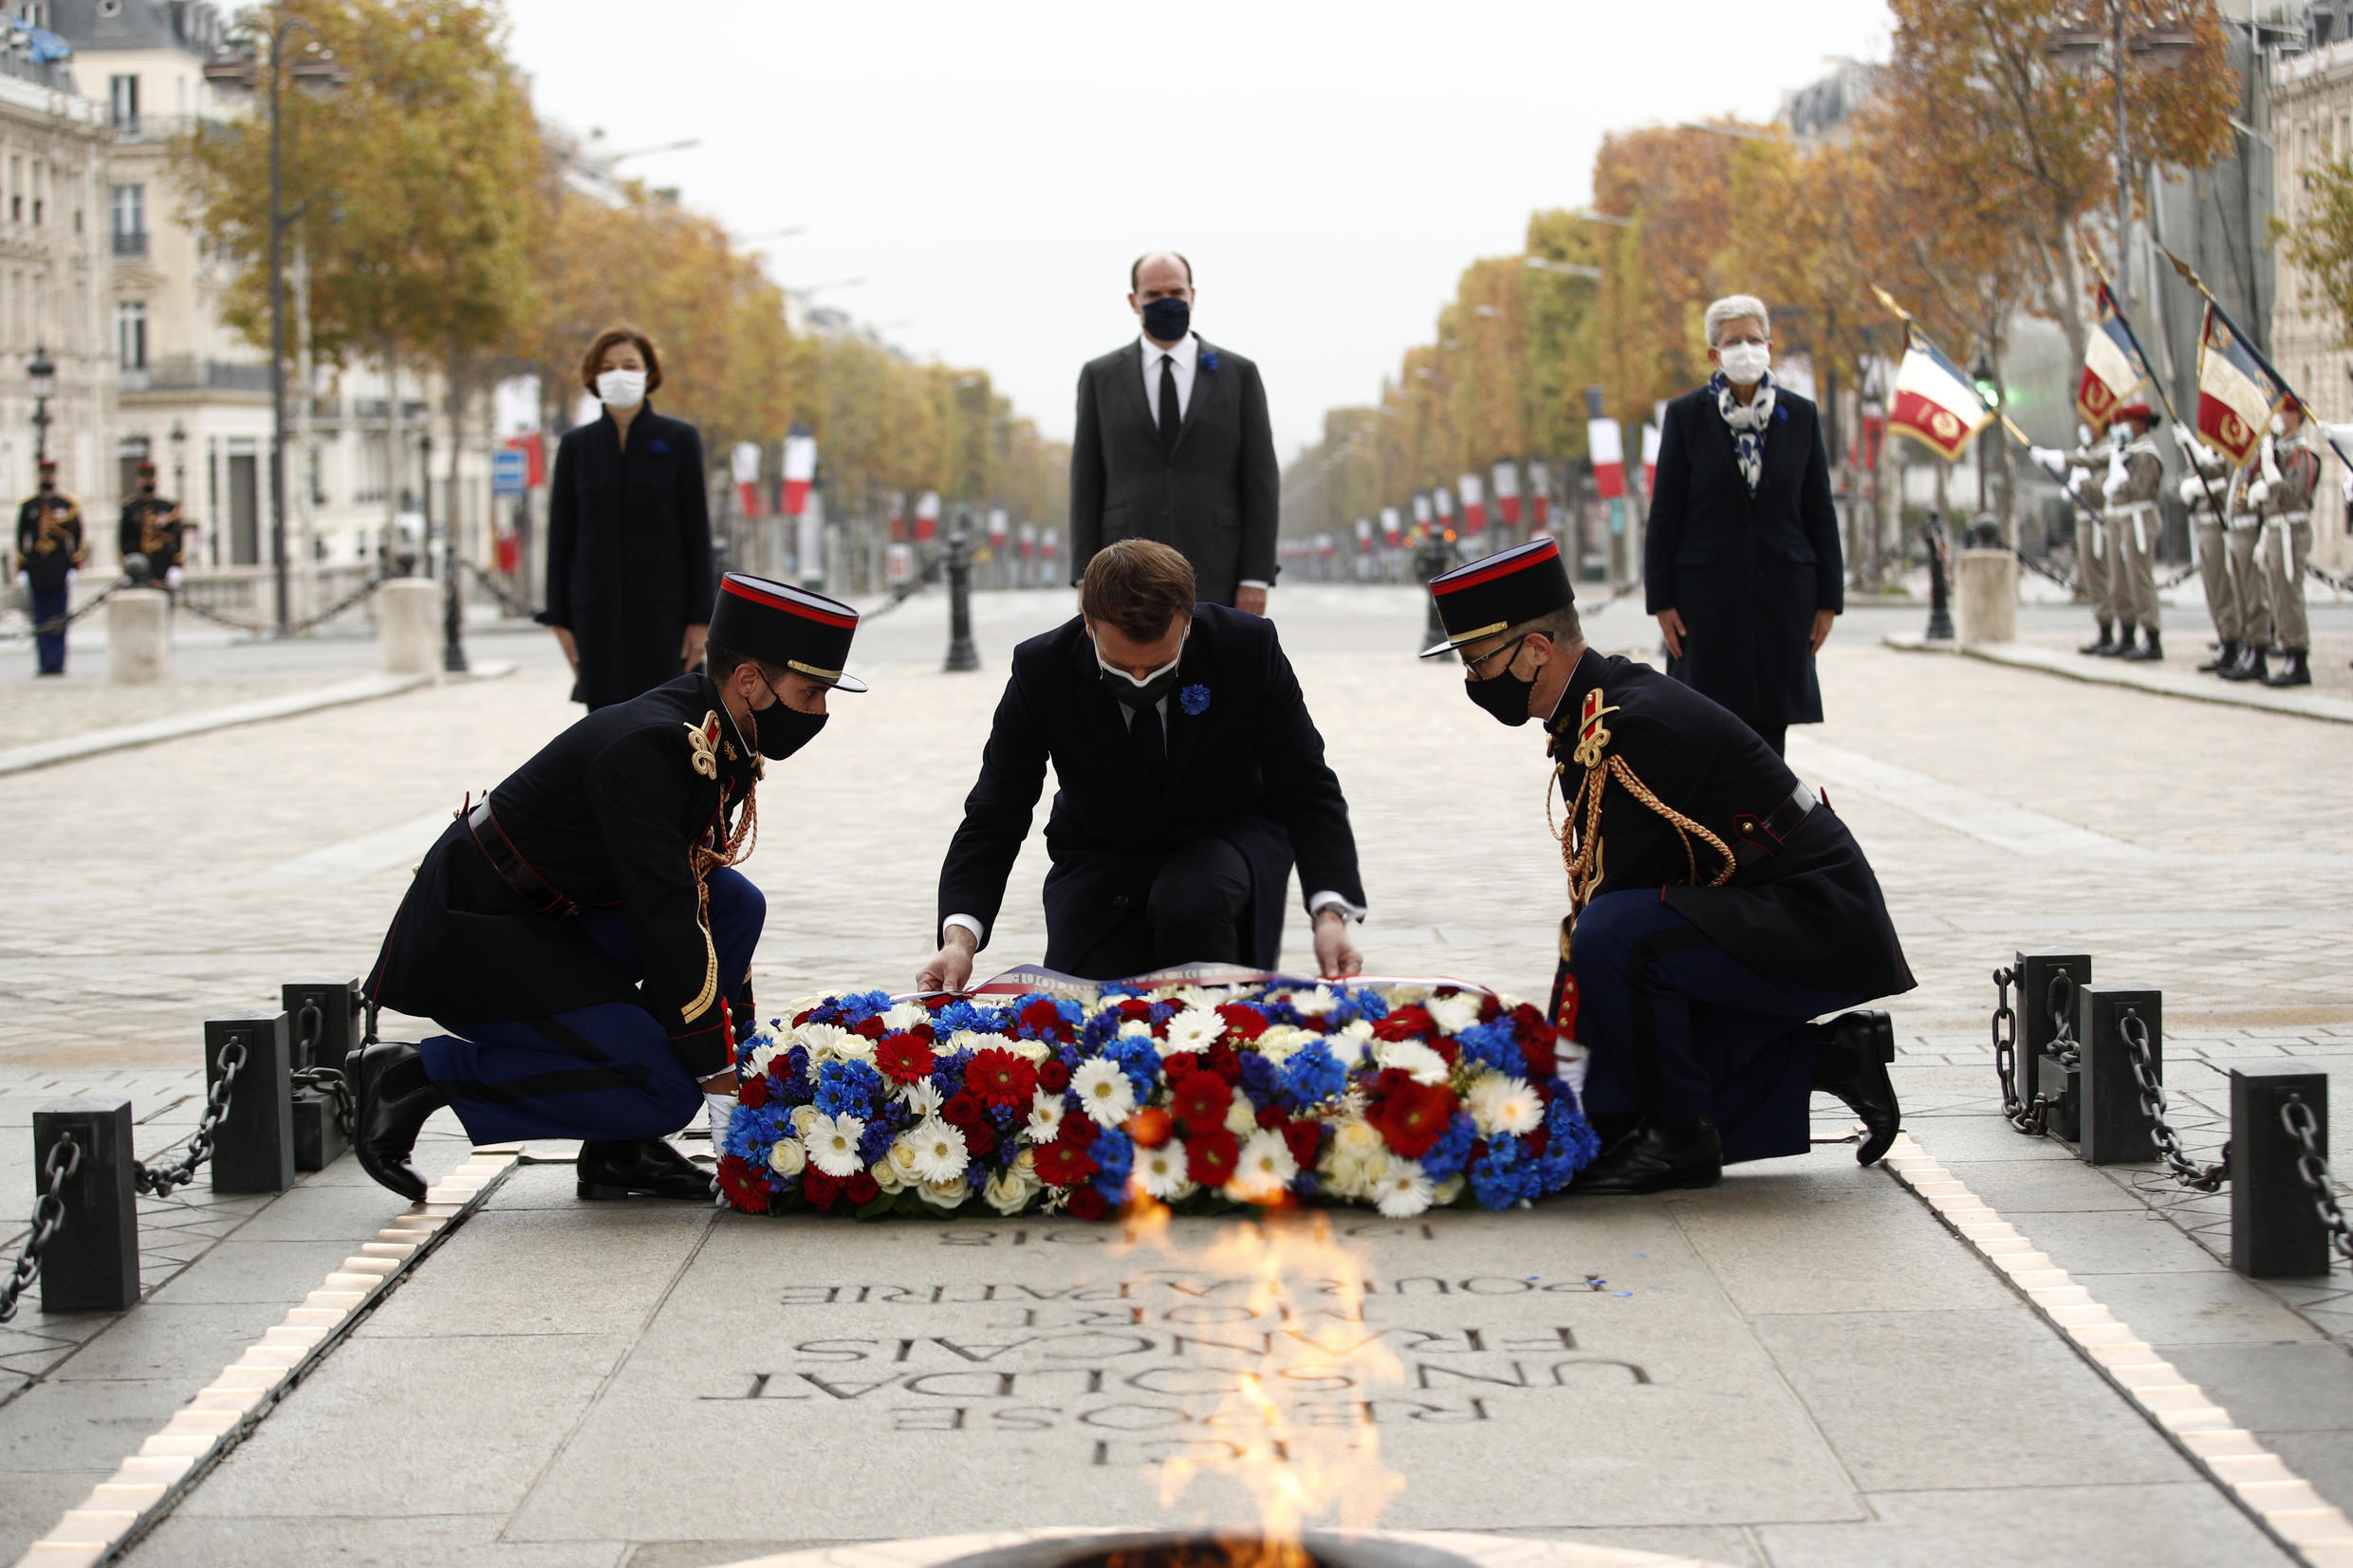 President Emmanuel Macron paid tribute to the fallen of France at a ceremony at which the names of19 soldiers killed in the line of duty over the last year were read out